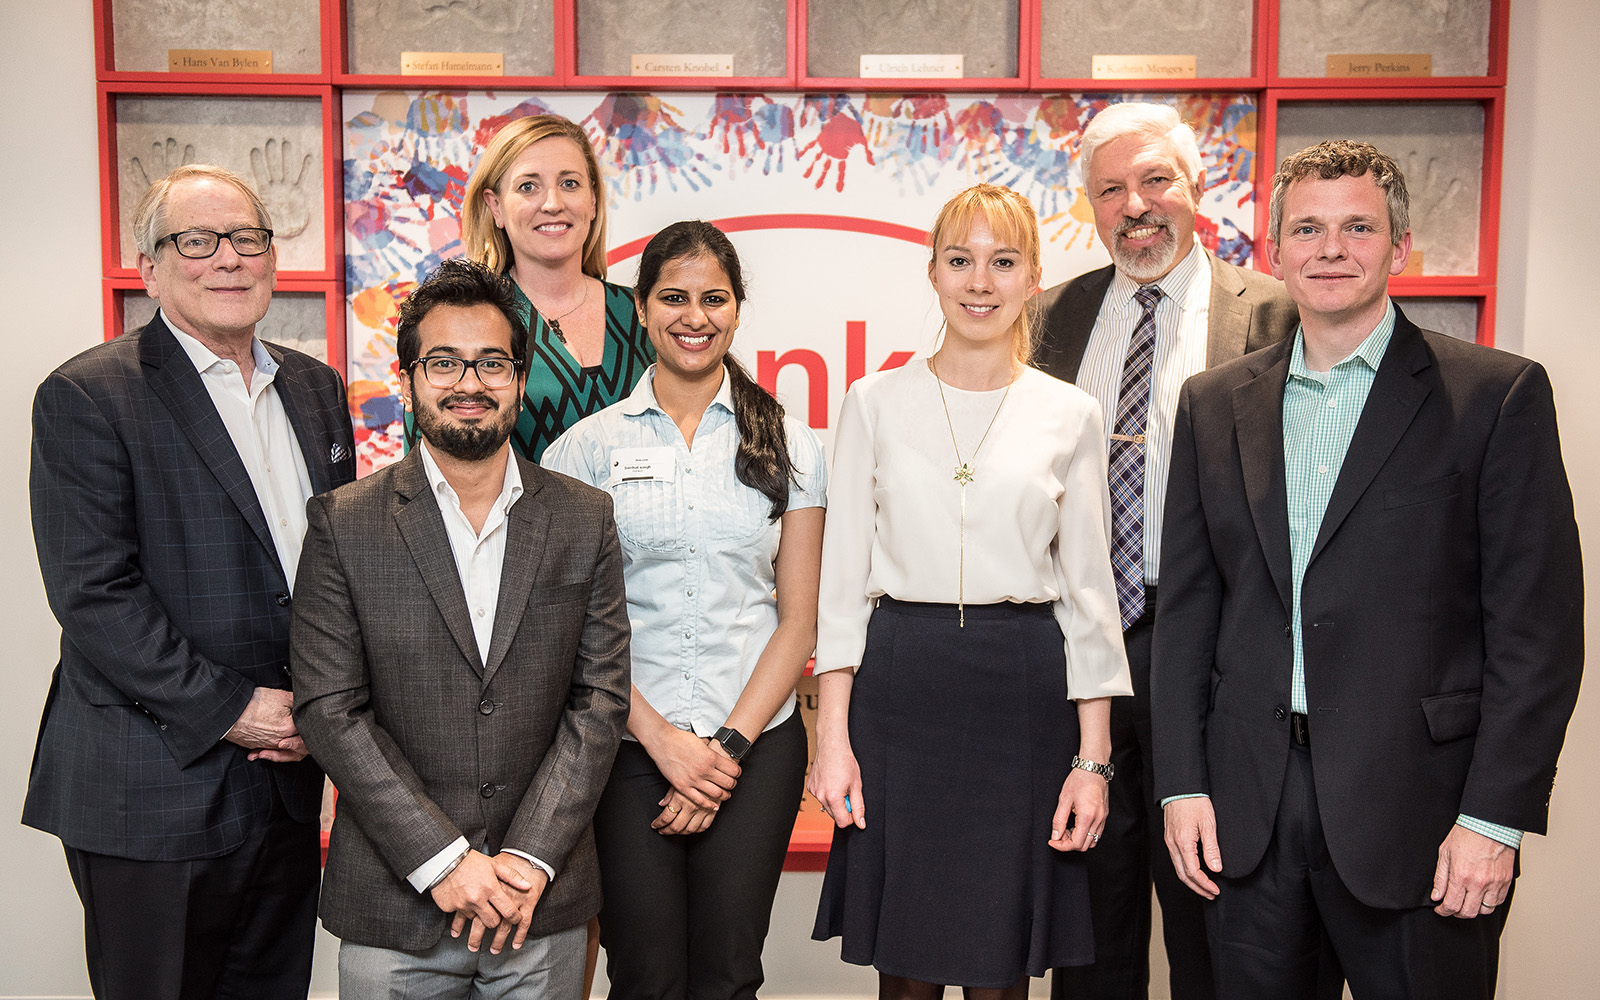 As part of UConn's Experiential Learning Collaborative (ELC), graduate students worked with Henkel Corp. this spring to identify new opportunities for business growth and competitive advantage. Above are some of the participants, including, from left: Martin Donner, ELC project mentor; Niraj Sharma '18 MSBAPM; Kimberly Newton, a vice president at Henkel; Snehal Singh '18 MSBAPM; Kseniia Poirkina '18 MBA; Greg Kivenzor, ELC director, and Brad Wade, director at Henkel. (Nathan Oldham/UConn School of Business)